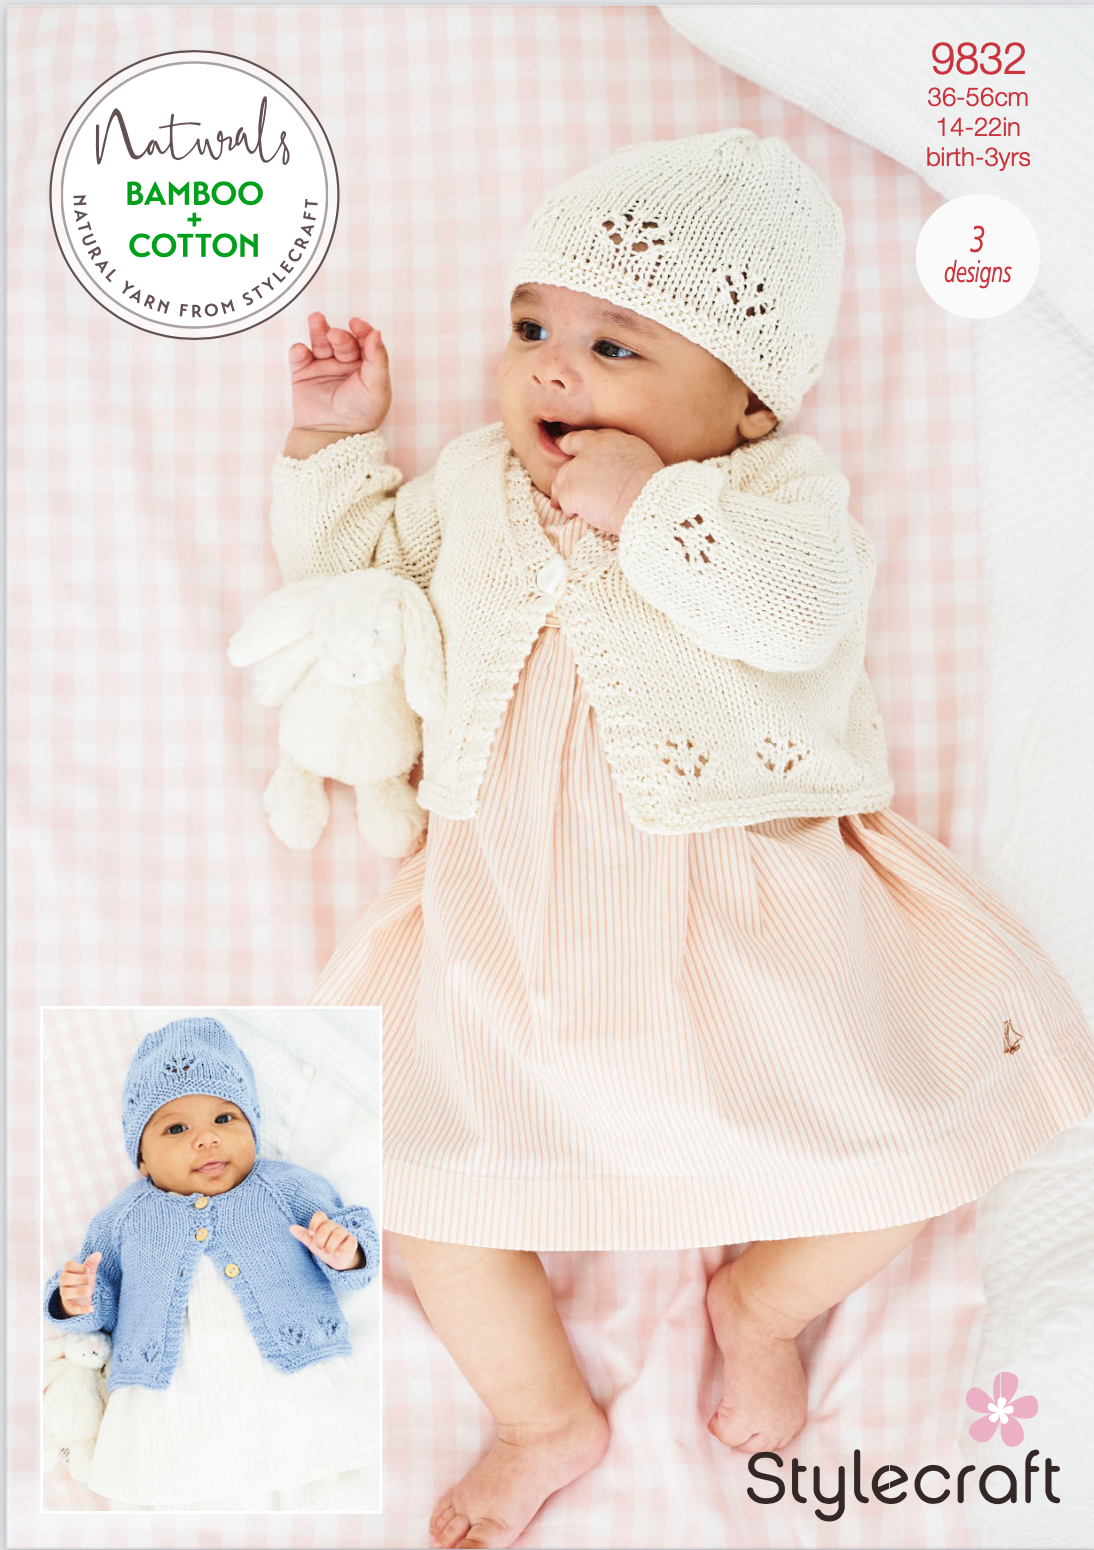 Stylecraft Pattern Naturals Bamboo+Cotton 9832 (download) product image